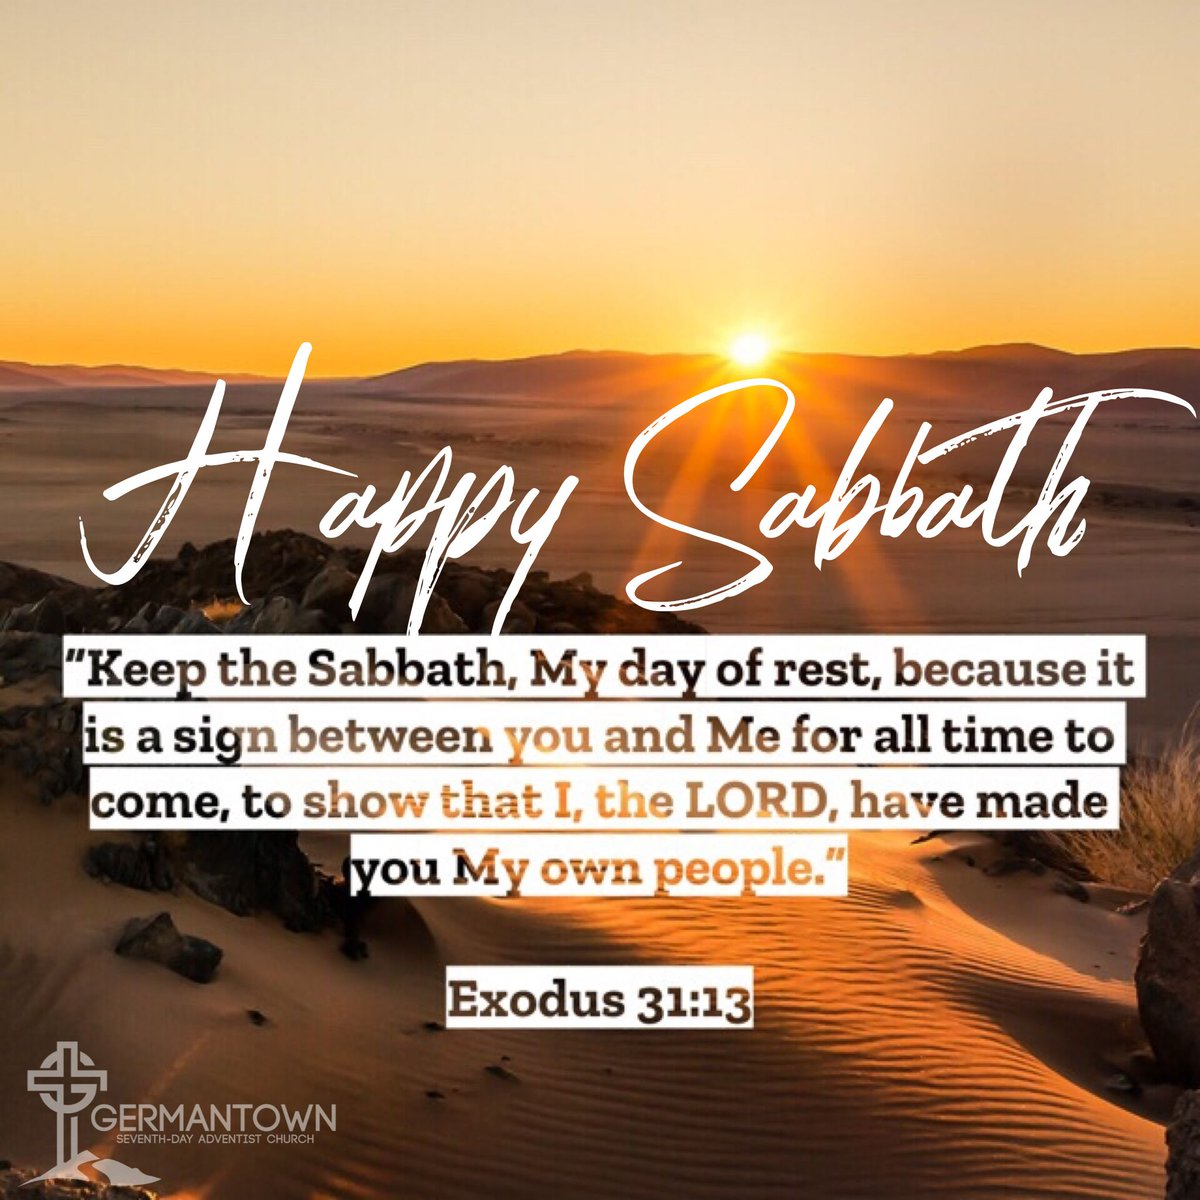 The Sabbath is finally here! ☺️ Happy Sabbath to all our friends and family around the world!  #Exodus31v13 #Happy #Blessed #Rest #Reset #Reflect #Sabbath #SabbathDay #Bible #Scripture #TheWord #seventhdayadventist #sda #germantownsda #germantown215 #learn #love #lead #philly